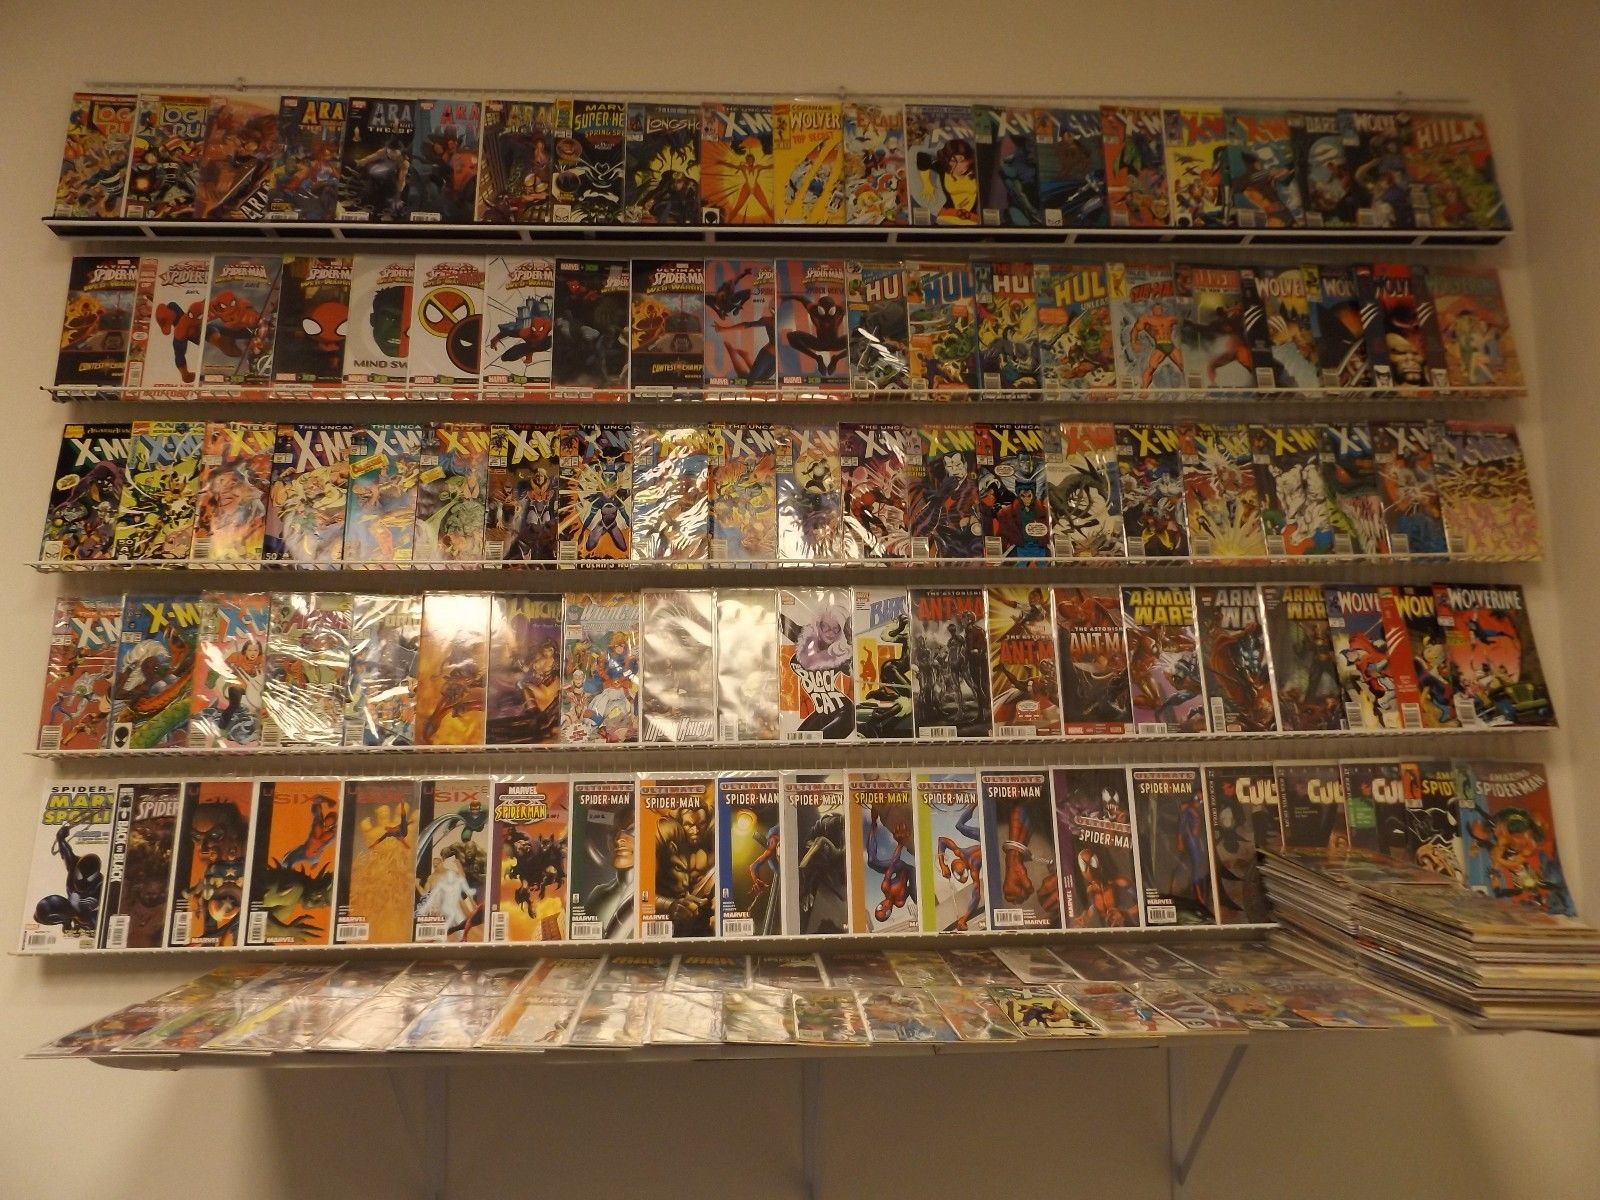 Huge Lot of 300 Comics W/X-Men, Spider-Man, Ant-man, Iron Man+MORE Avg Fine-